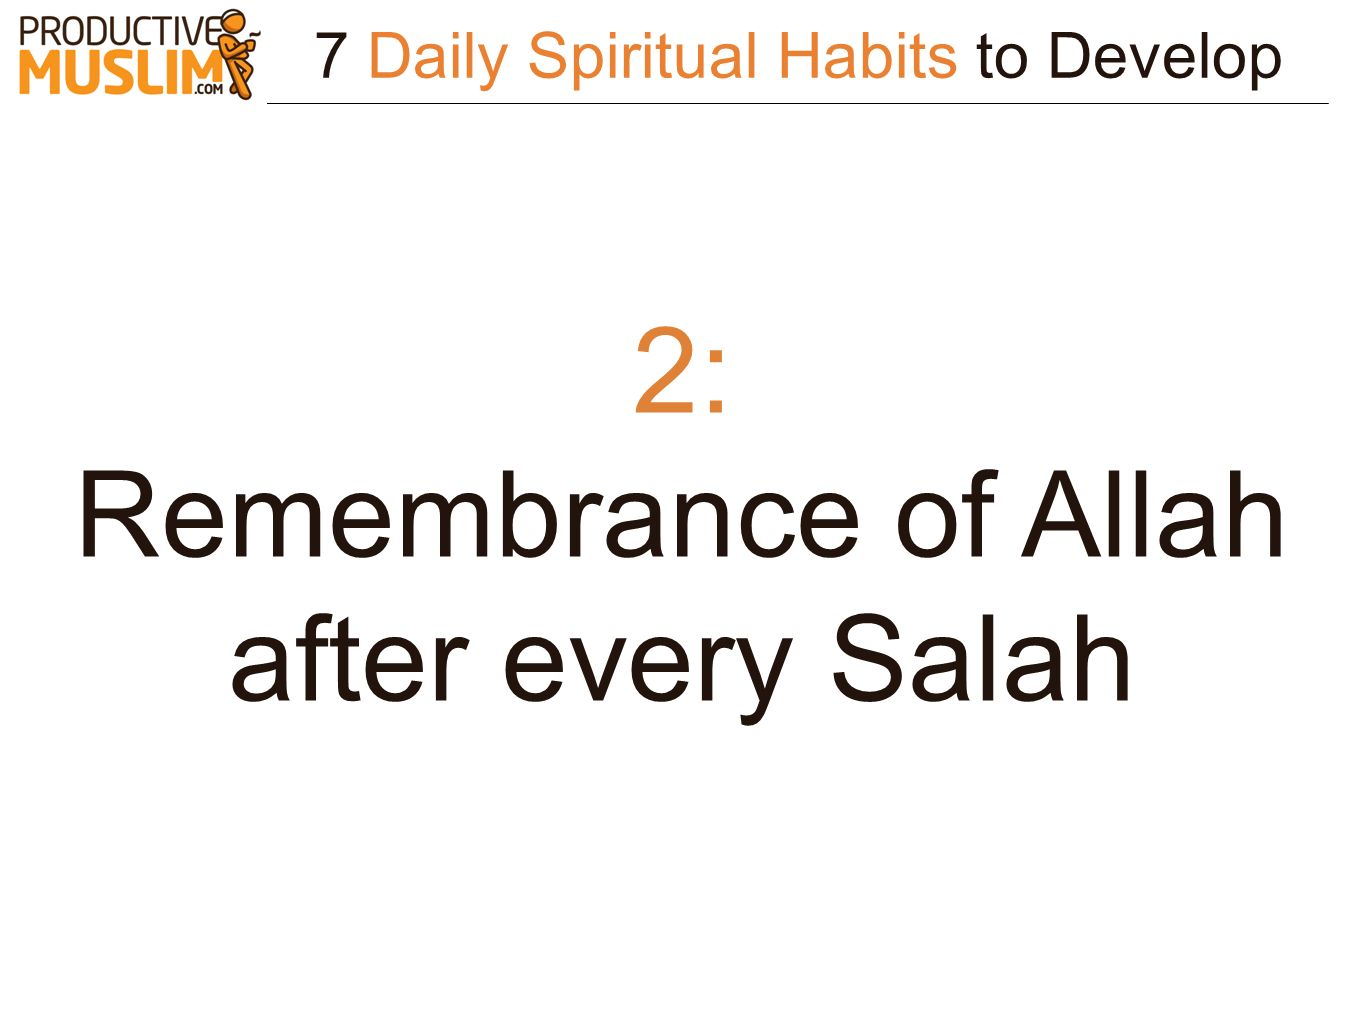 7 Daily Spiritual Habits to Develop 2: Remembrance of Allah after every Salah